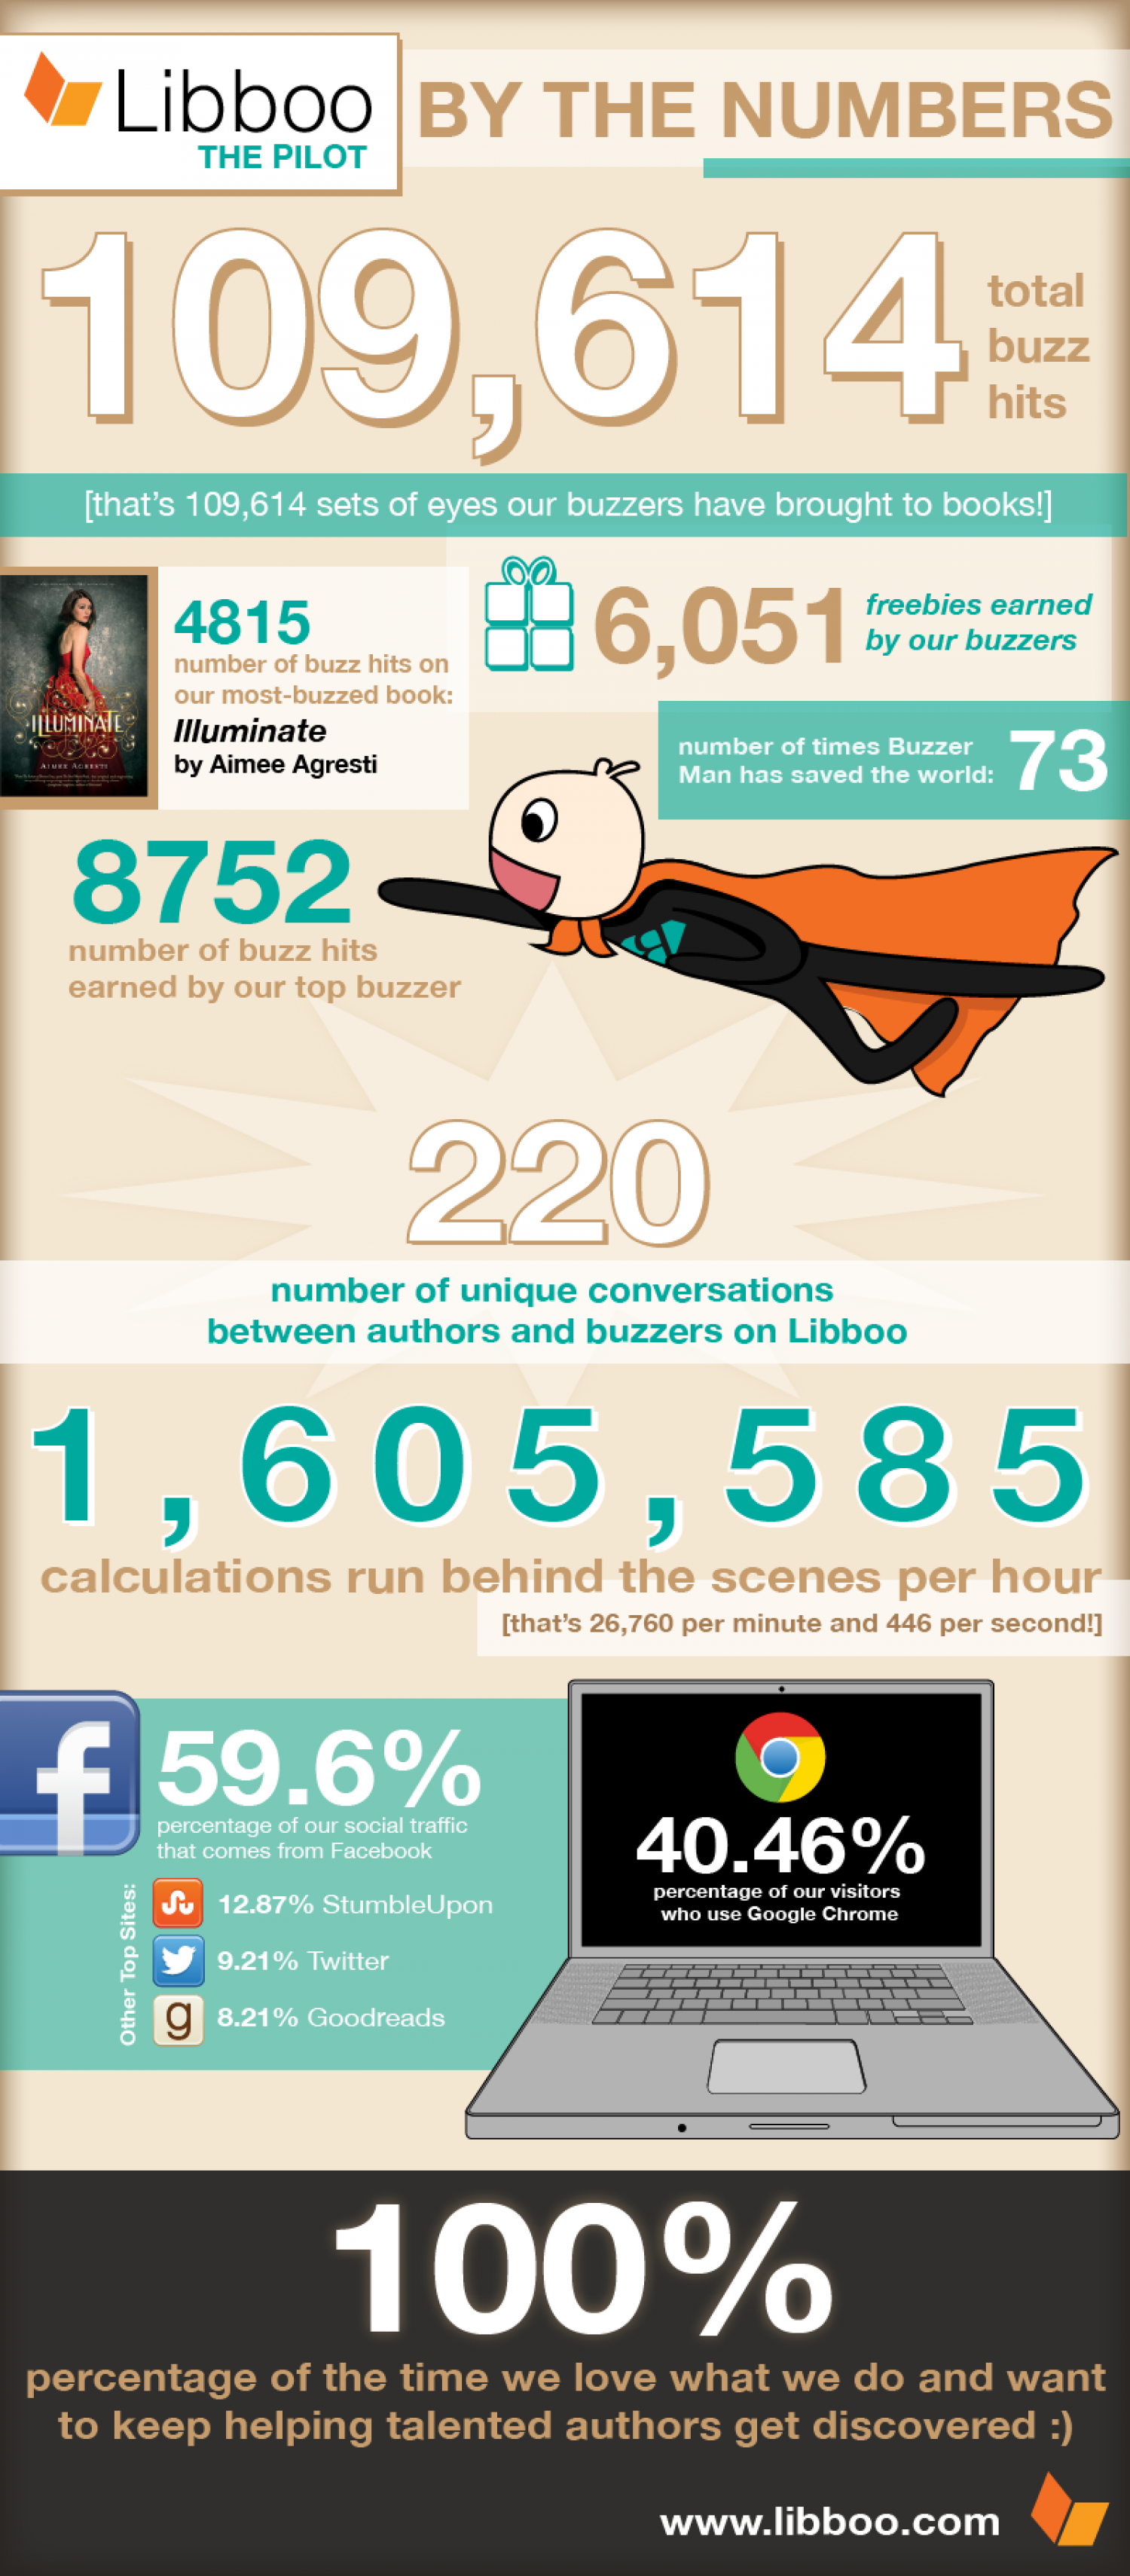 Libboo By The Numbers Infographic